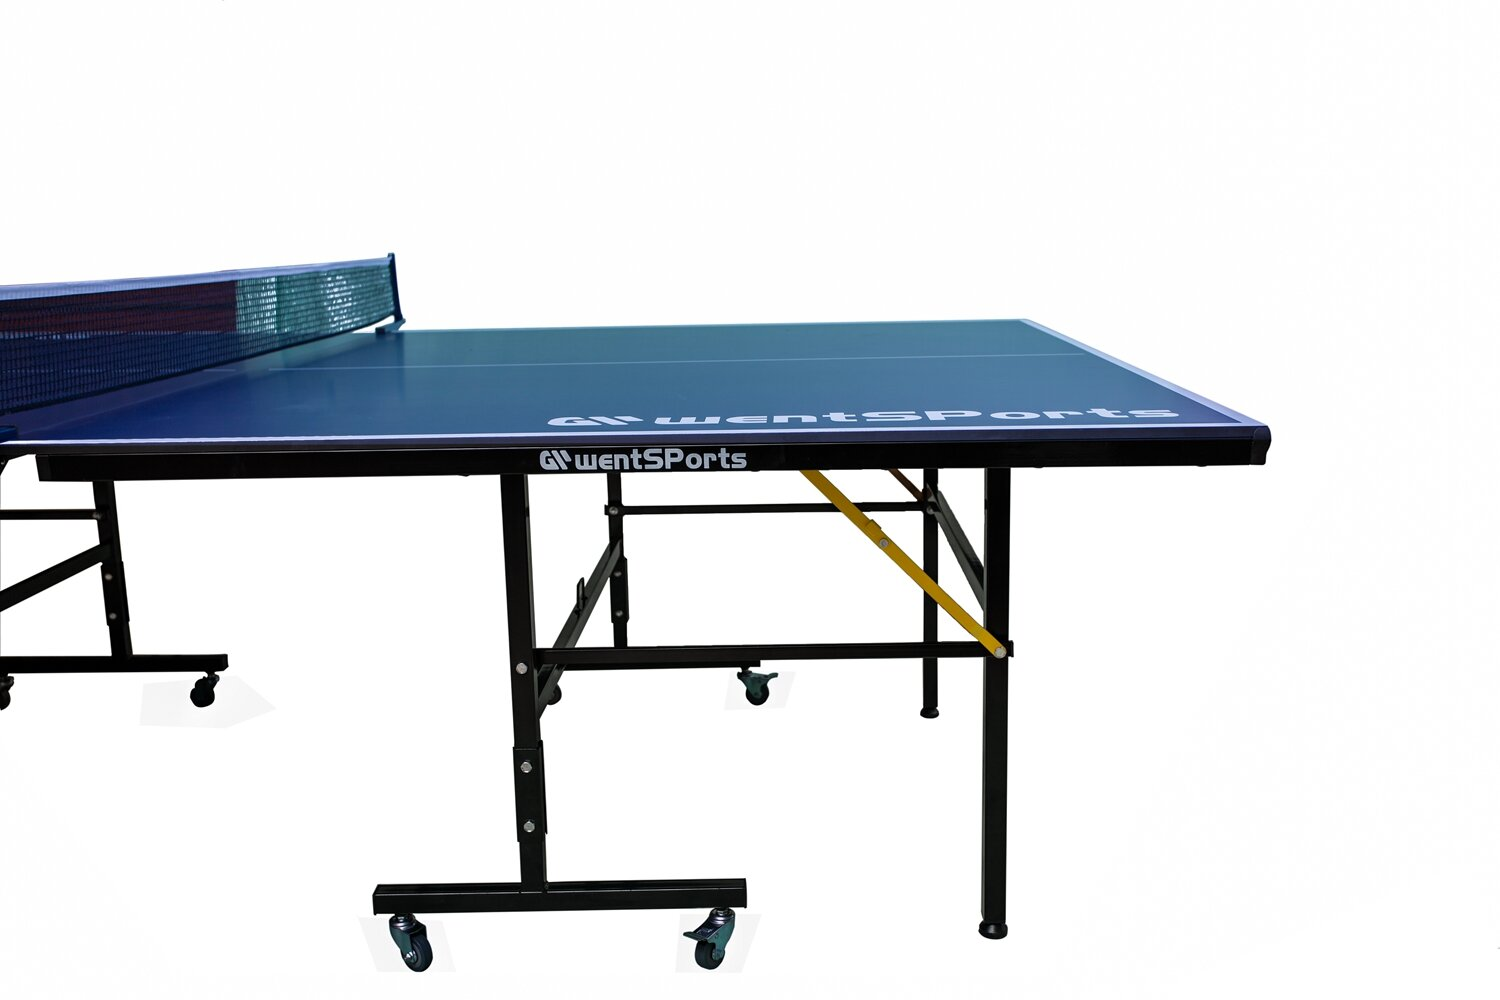 Wateday Wentsports Mini Foldable Indoor Outdoor Table Tennis Table With Paddles And Balls Wayfair